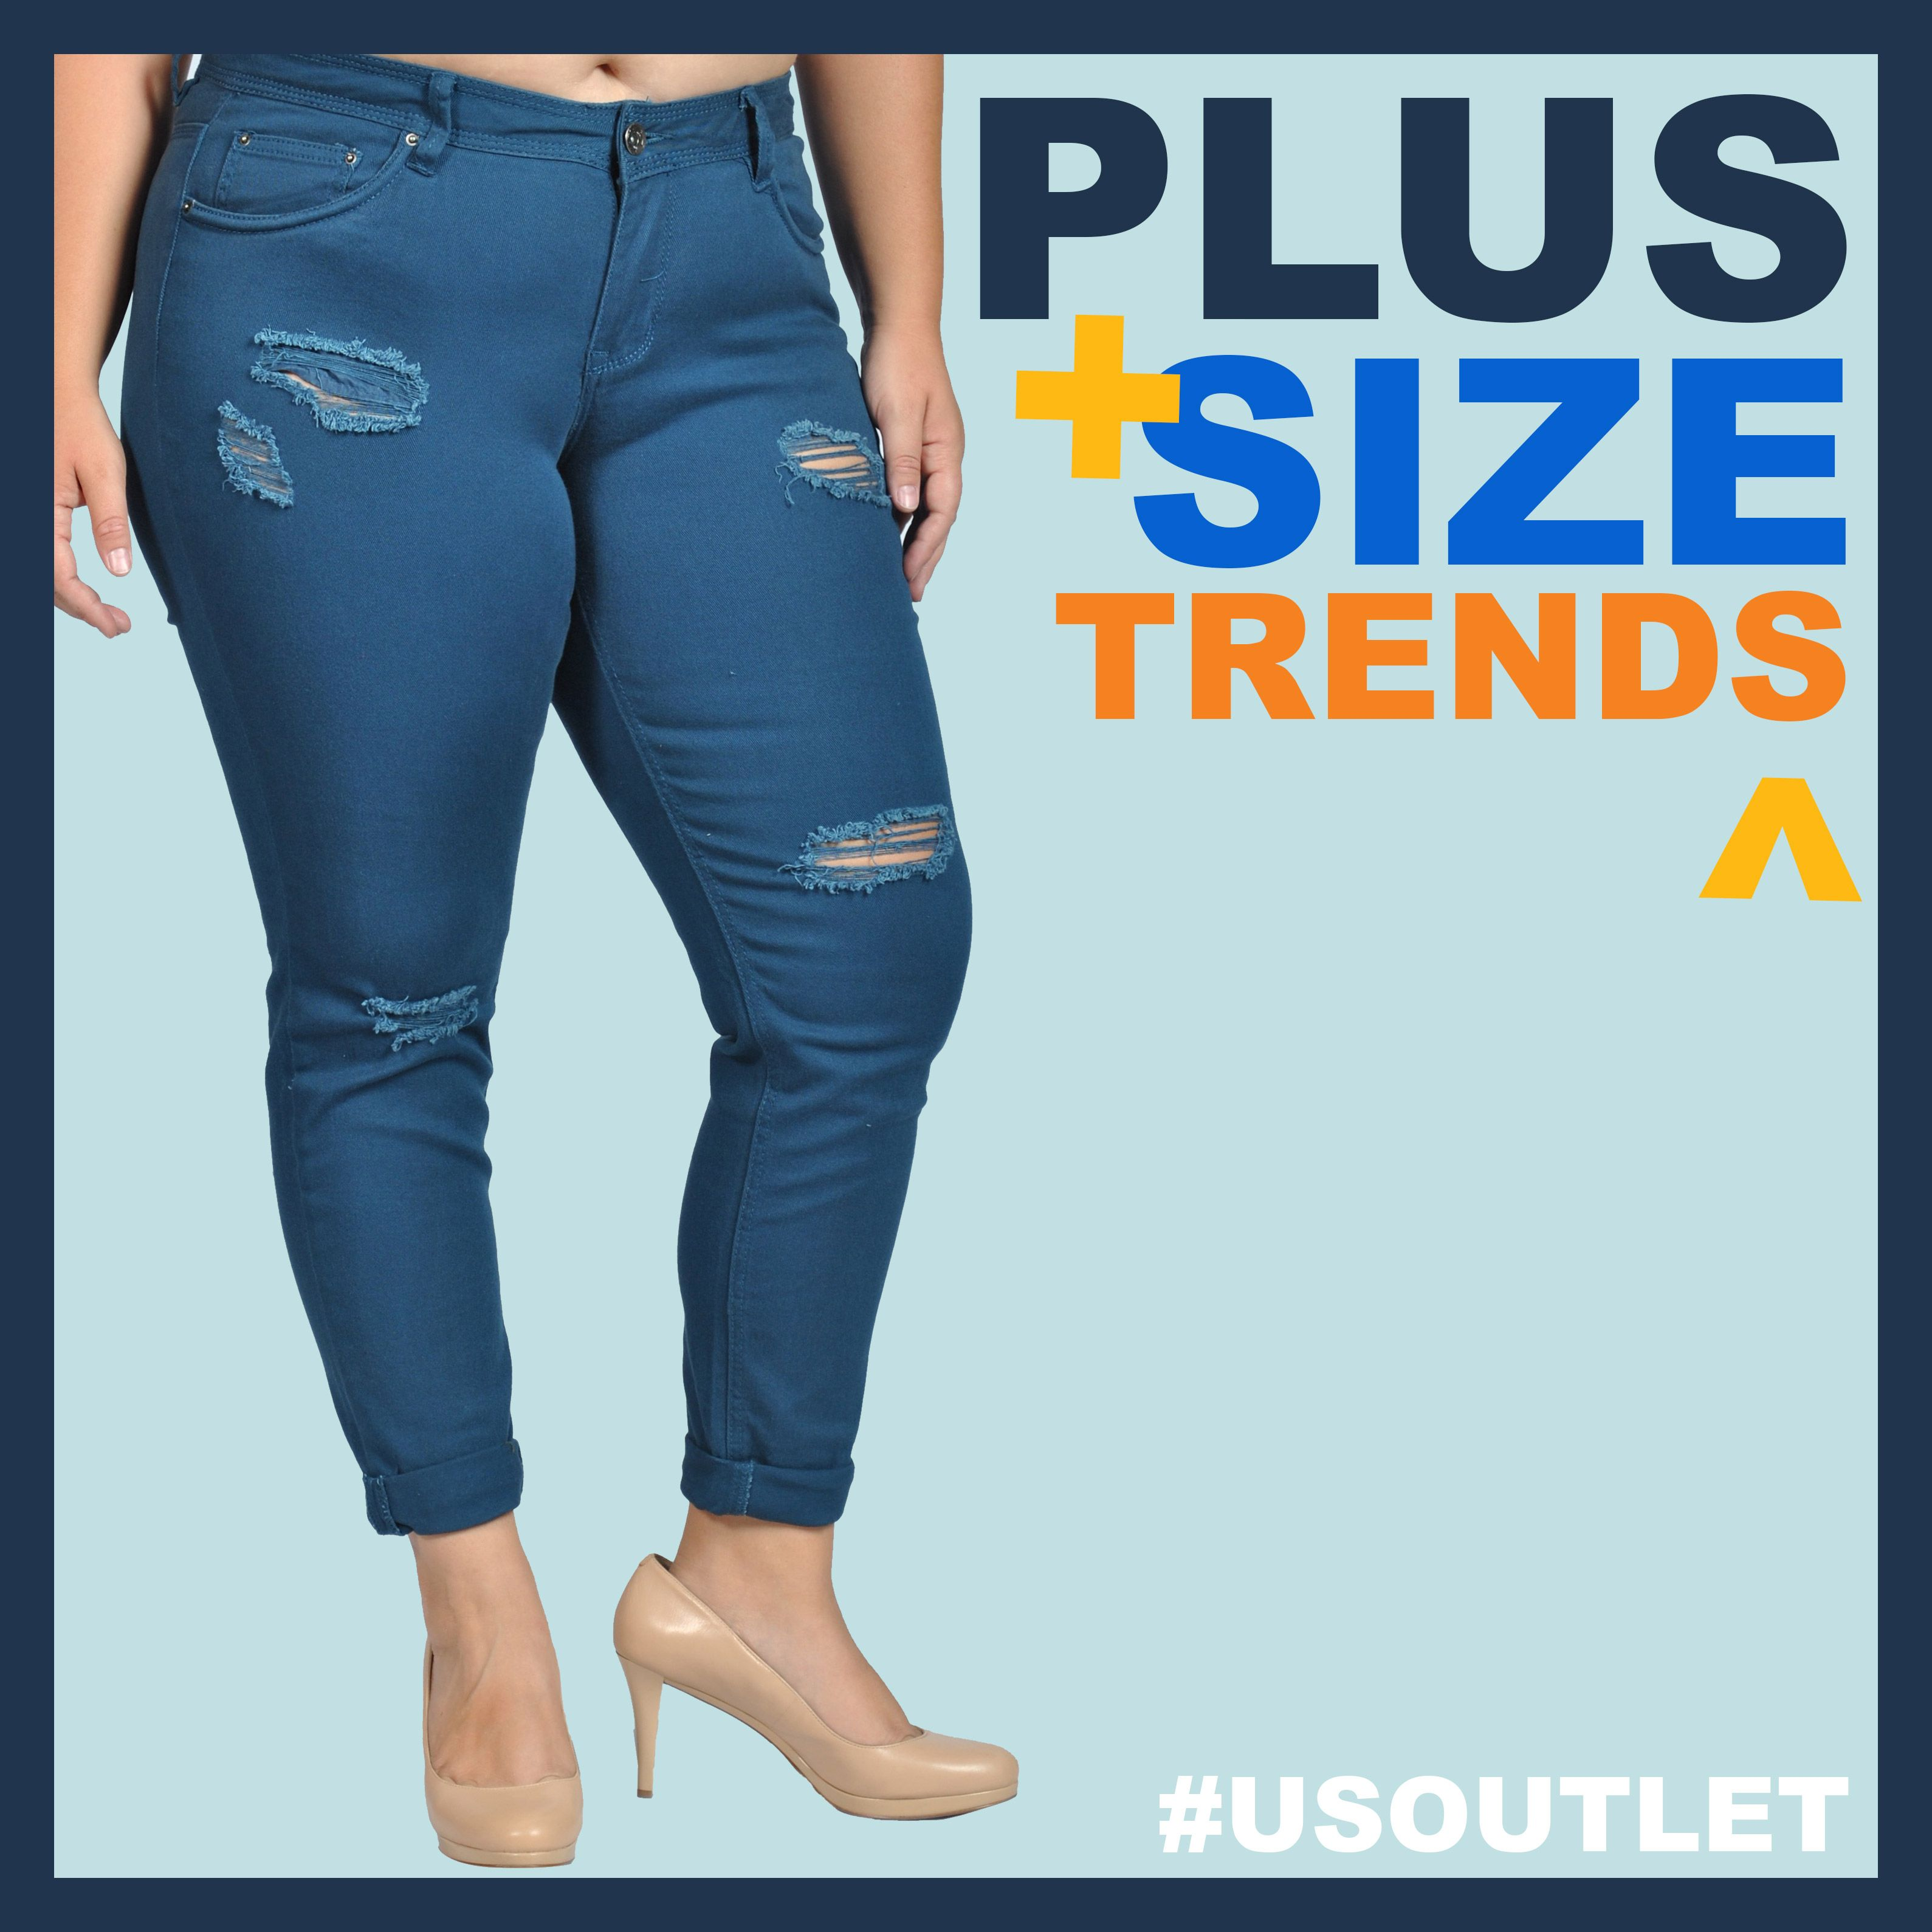 91576bd1e94 Women s Stretch Pull-on Skinny Ripped Distressed Denim Navy Jeans . Brand  Doll  House